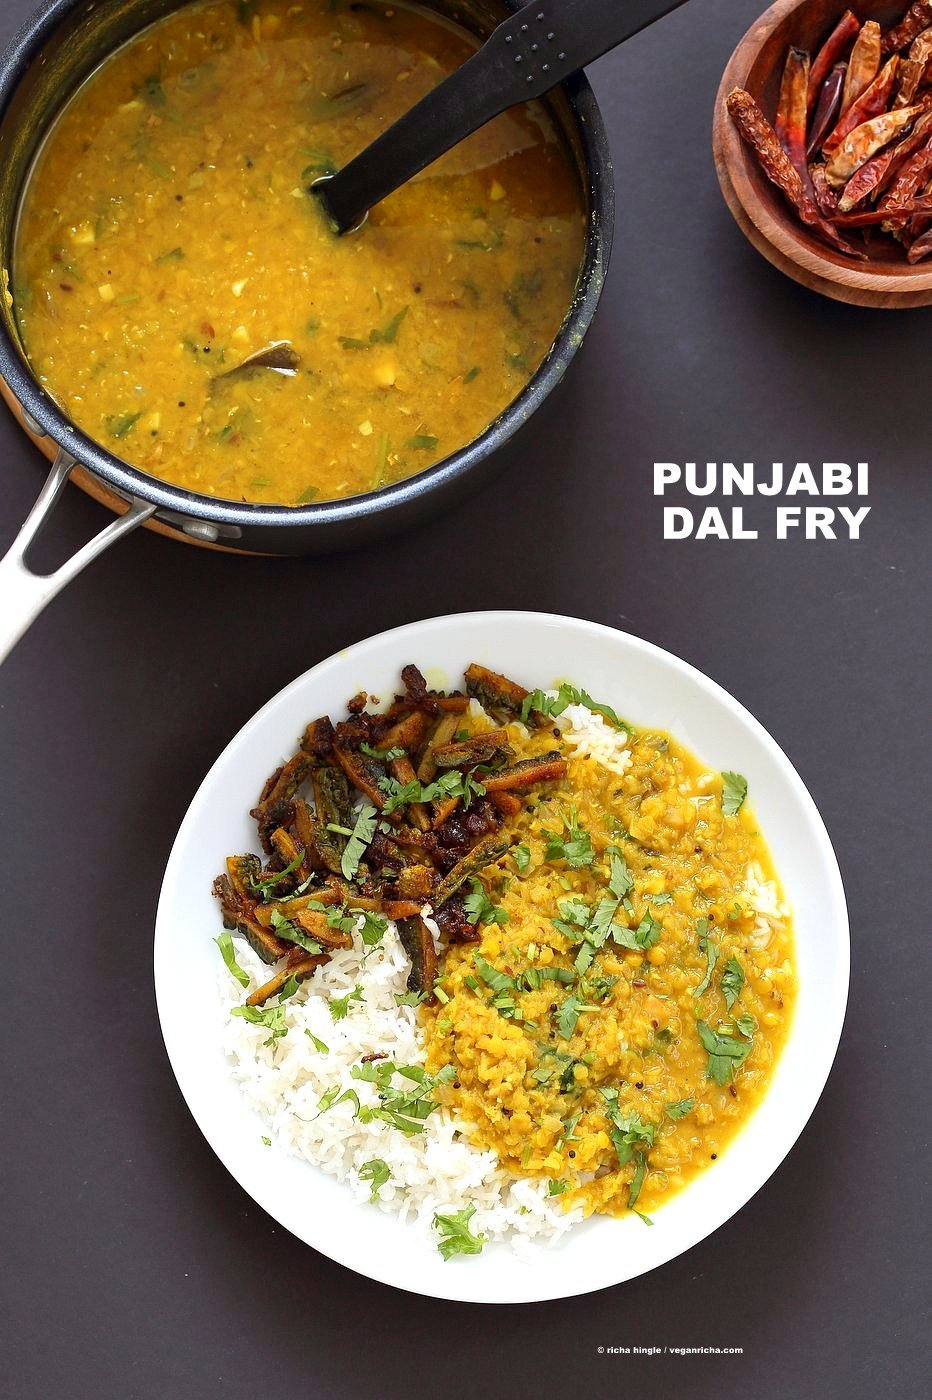 Punjabi dal fry recipe vegan richa punjabi dal fry recipe easy dal fry with whole spices and garam masala lentil forumfinder Images